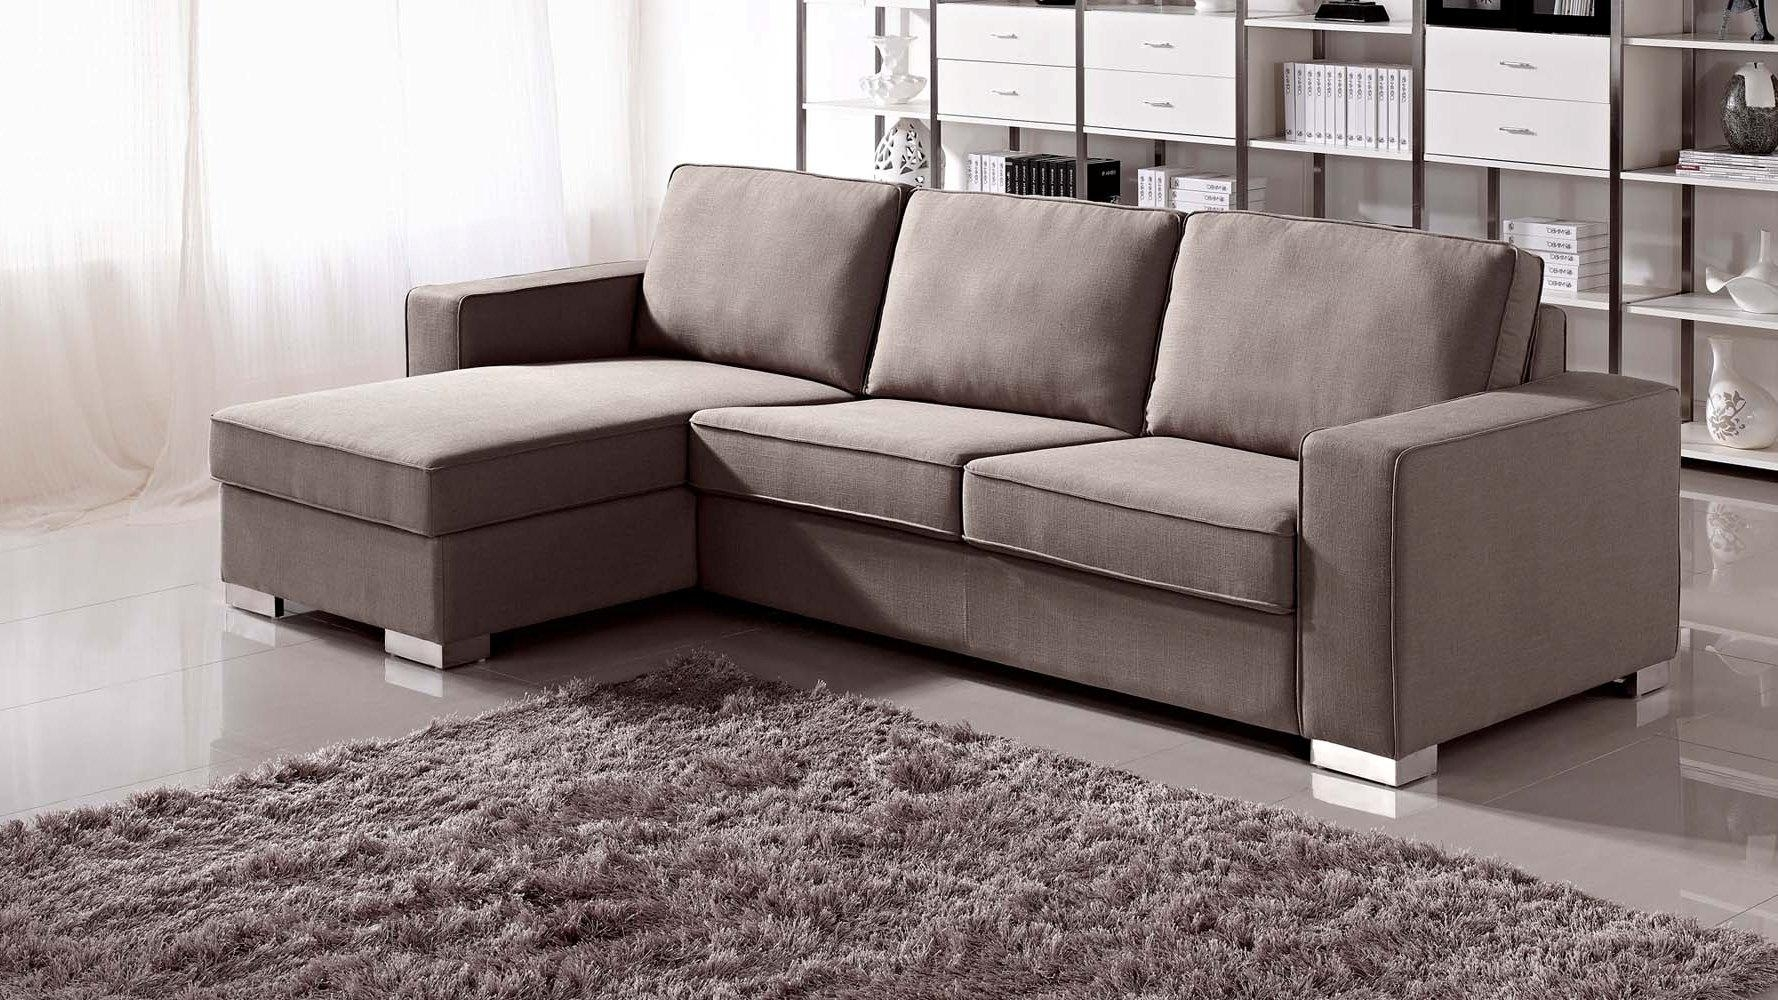 Furniture: Wondrous Alluring Sectional With Sleeper For Home Throughout Sleeper Recliner Sectional (Image 9 of 20)